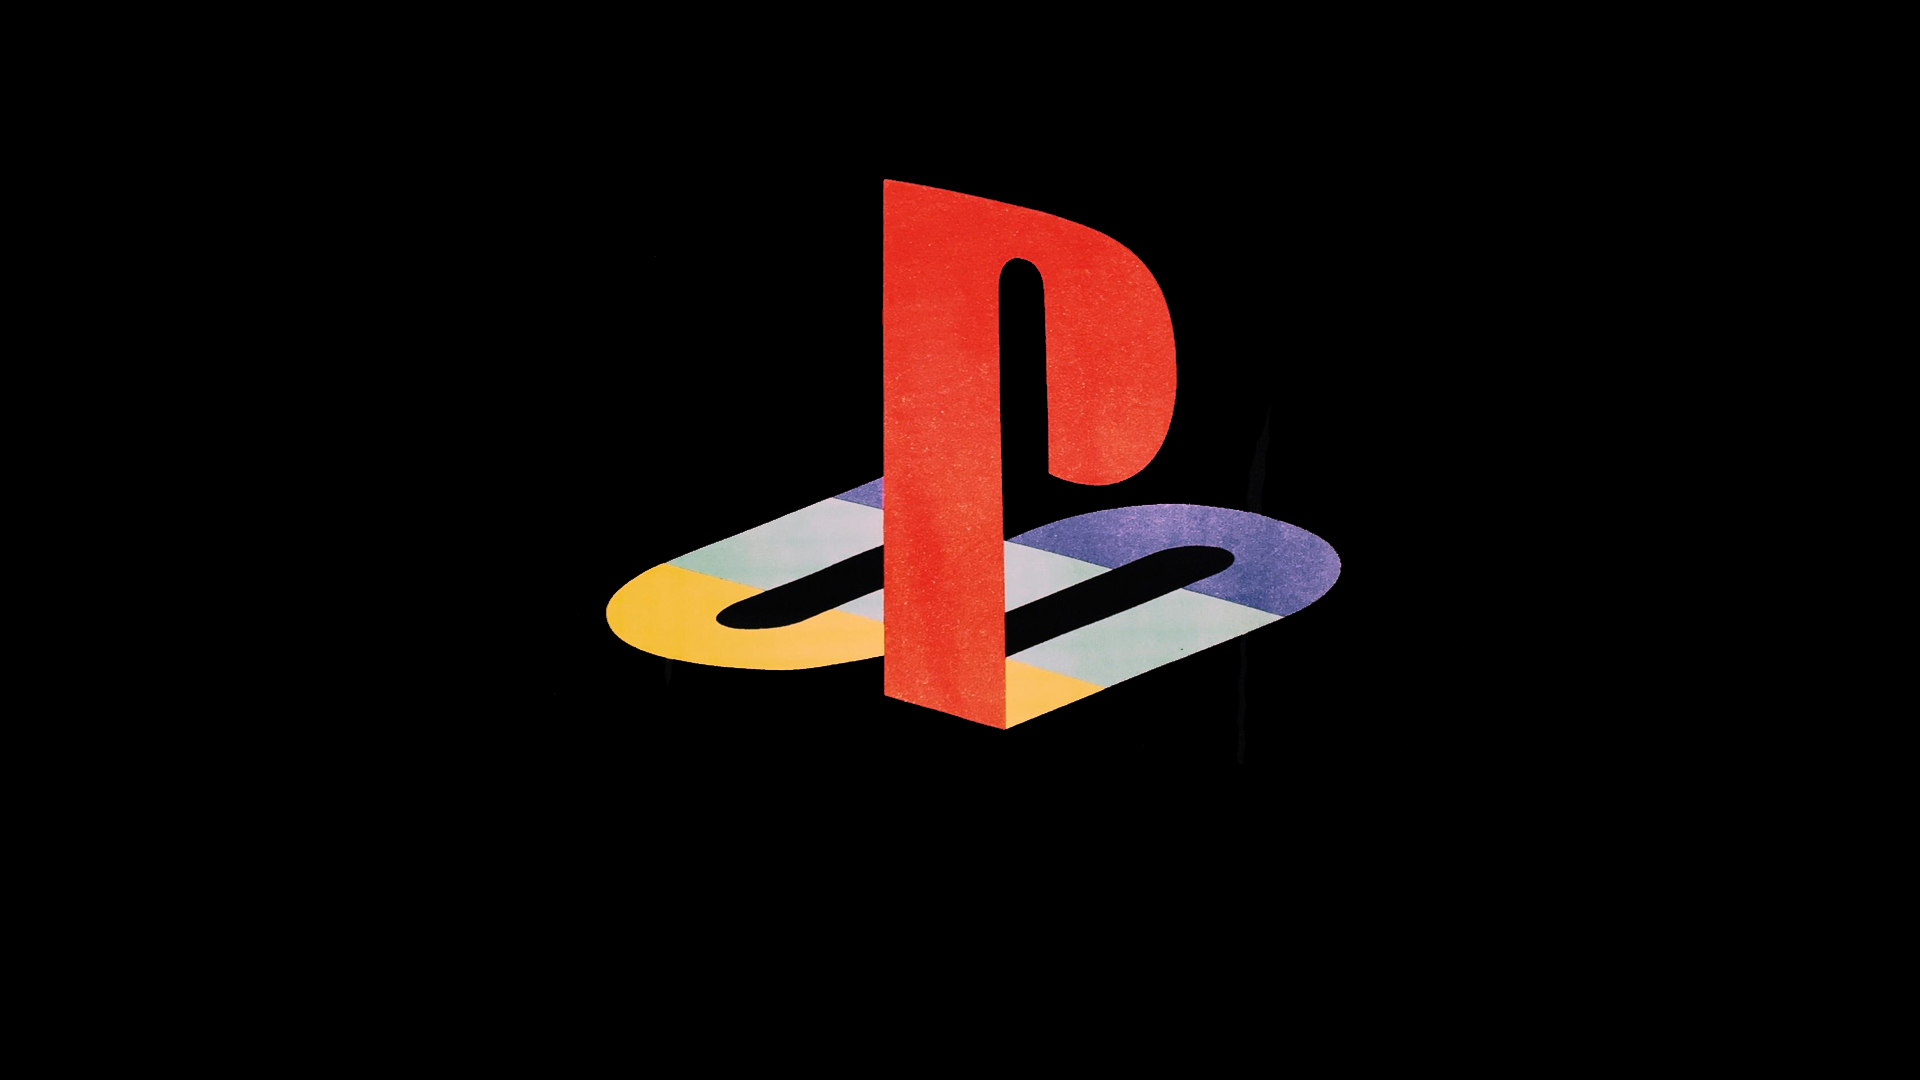 playstation logo hd logo 4k wallpapers images